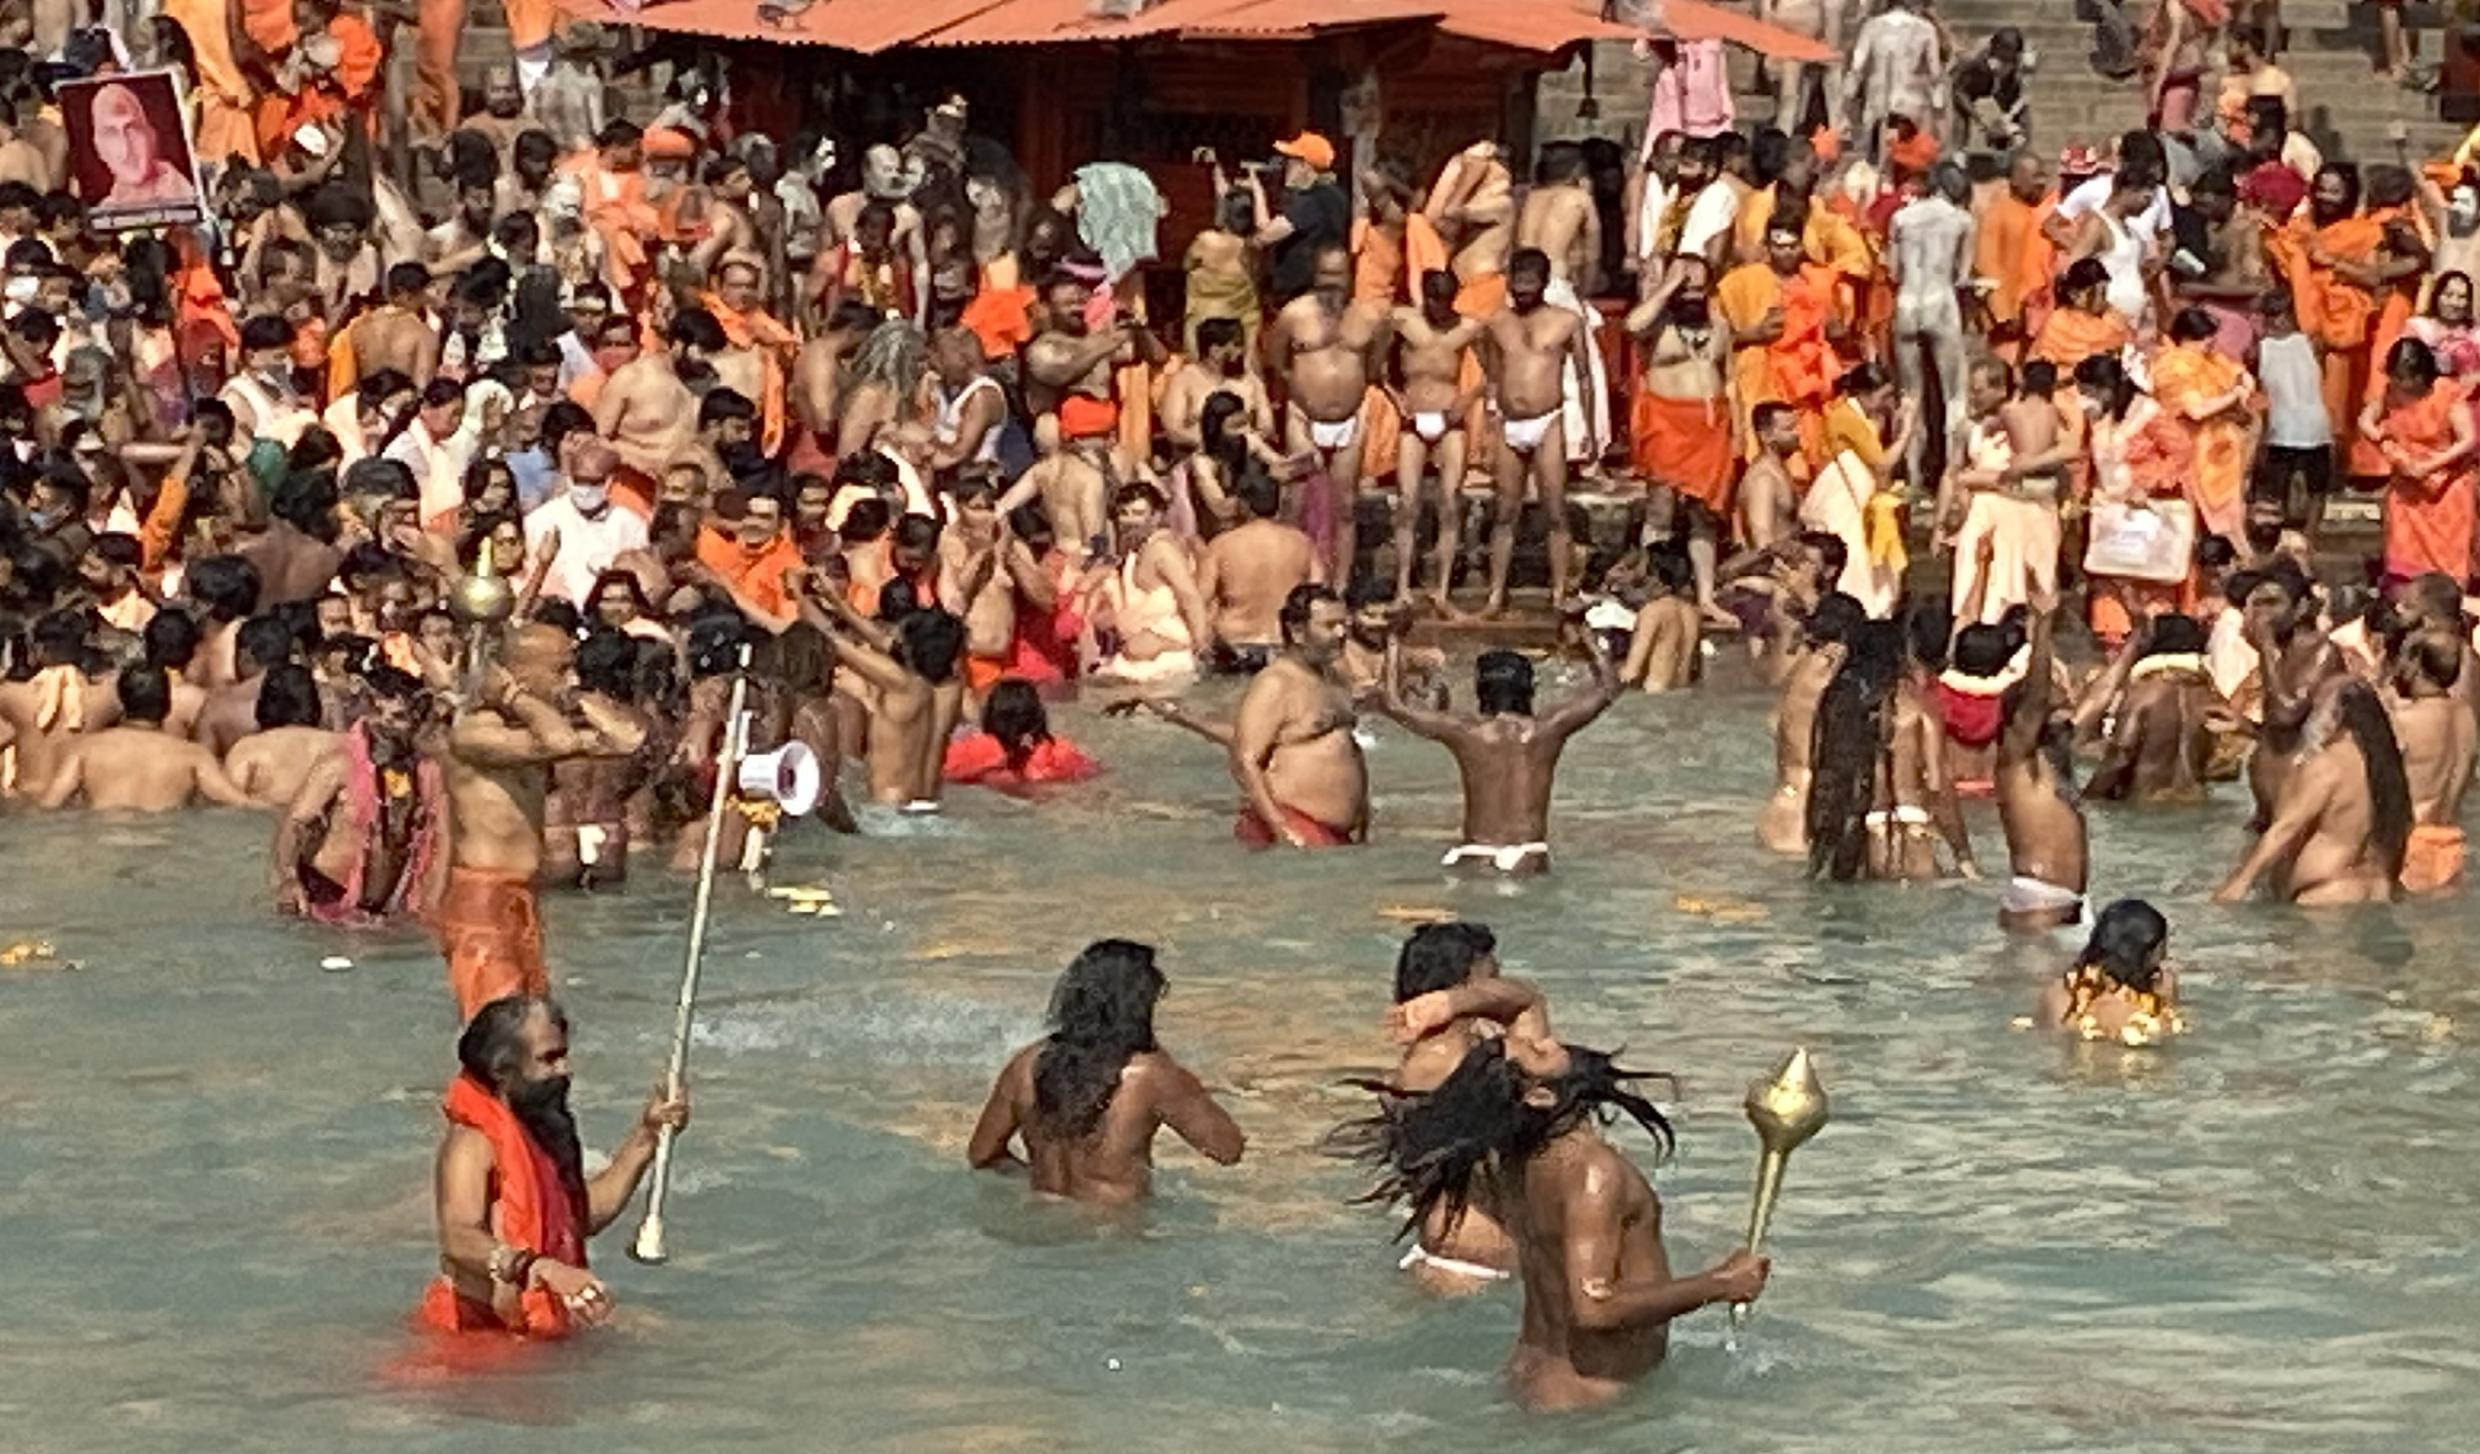 India's coronavirus epidemic and government health restrictions could not stop the once every 12 year Kumbh Mela festival from going ahead.